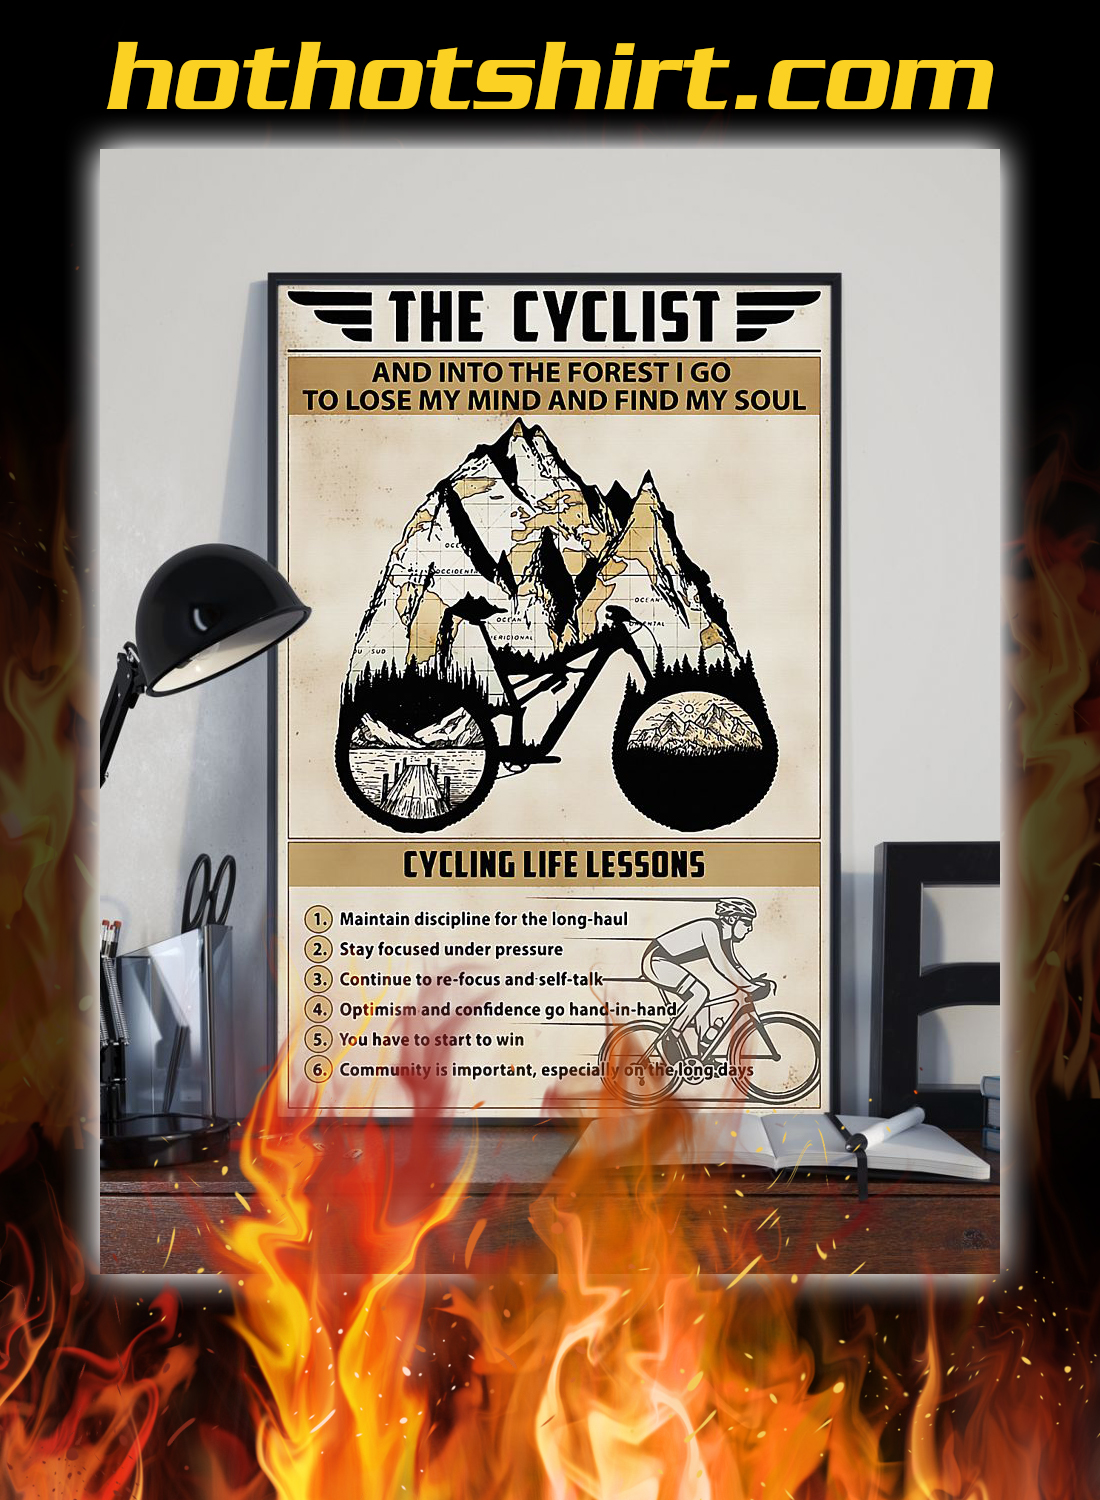 The cyclist cycling life lessons poster 1